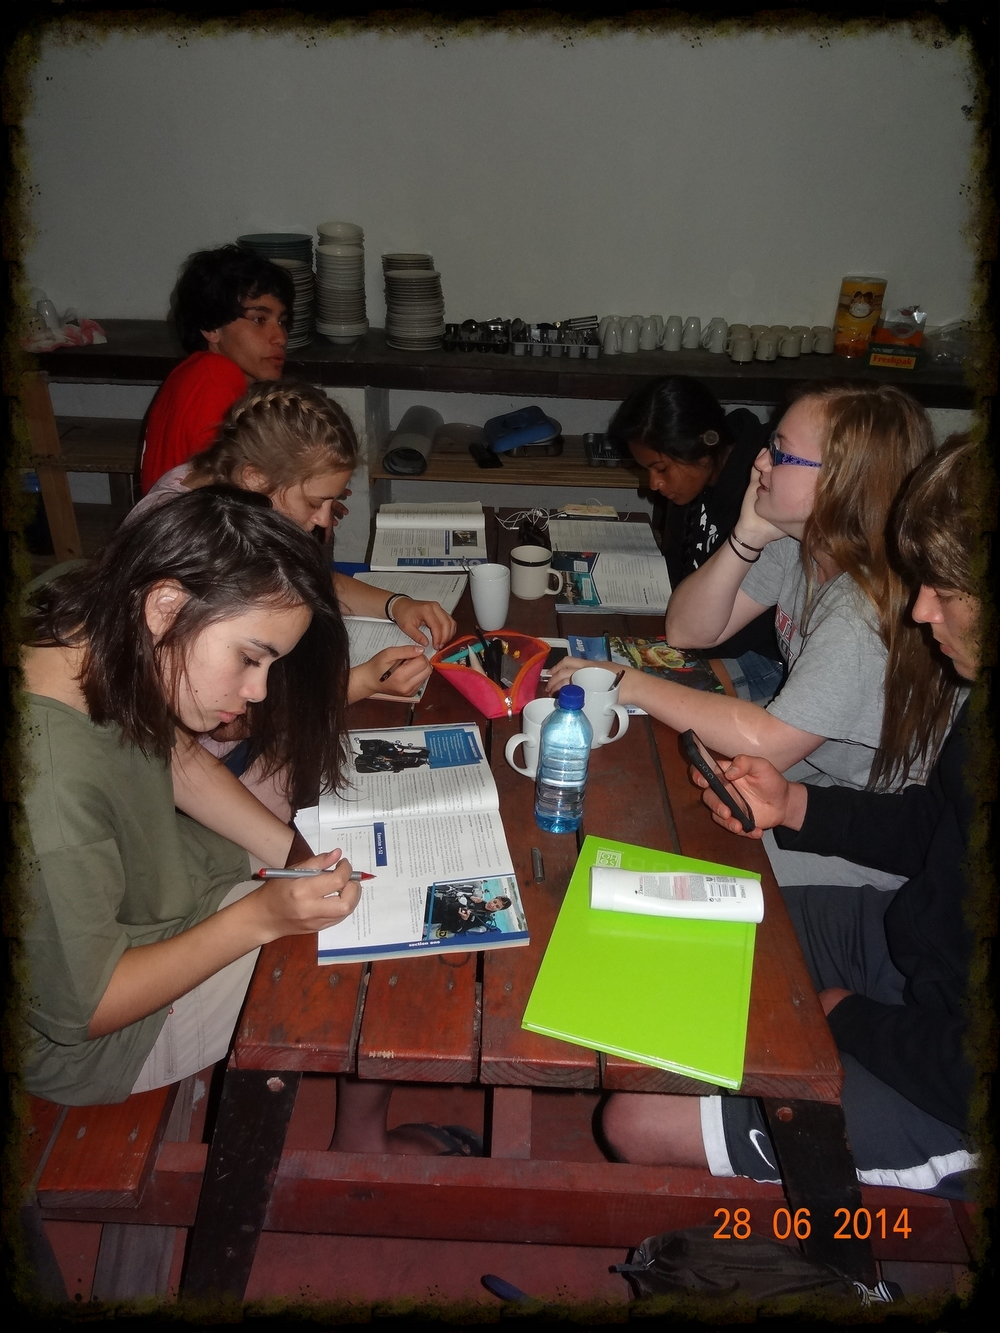 Students studying from their dive manuals in the mess hall, even though there will be no grade assigned to the HW.